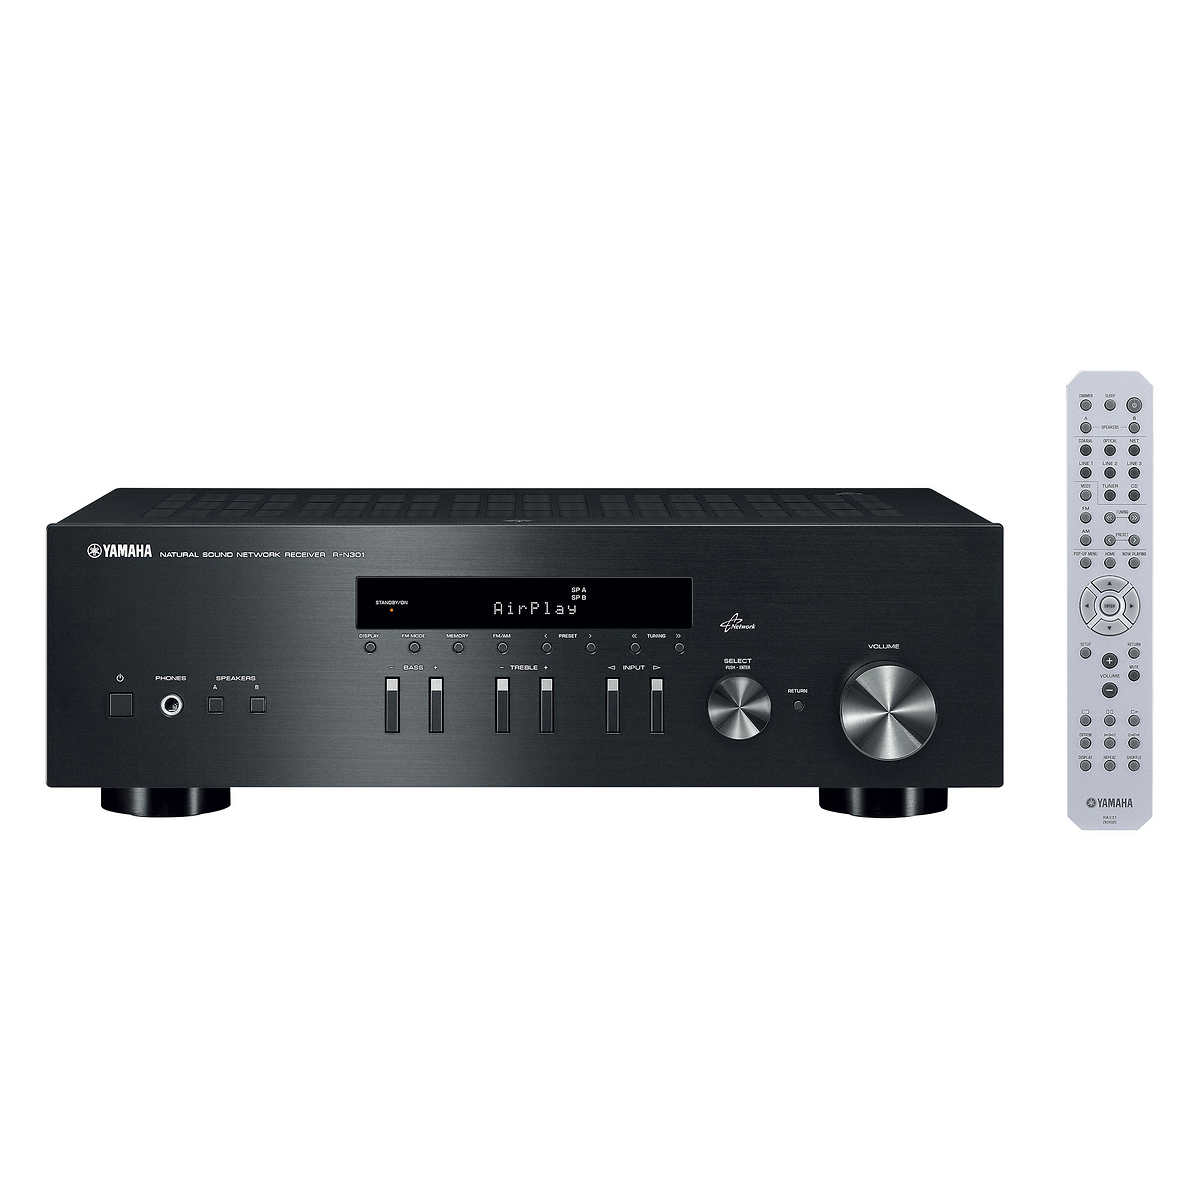 Bose soundtouch 130 home theater system black 738484 1100 b amp h - Member Only Item